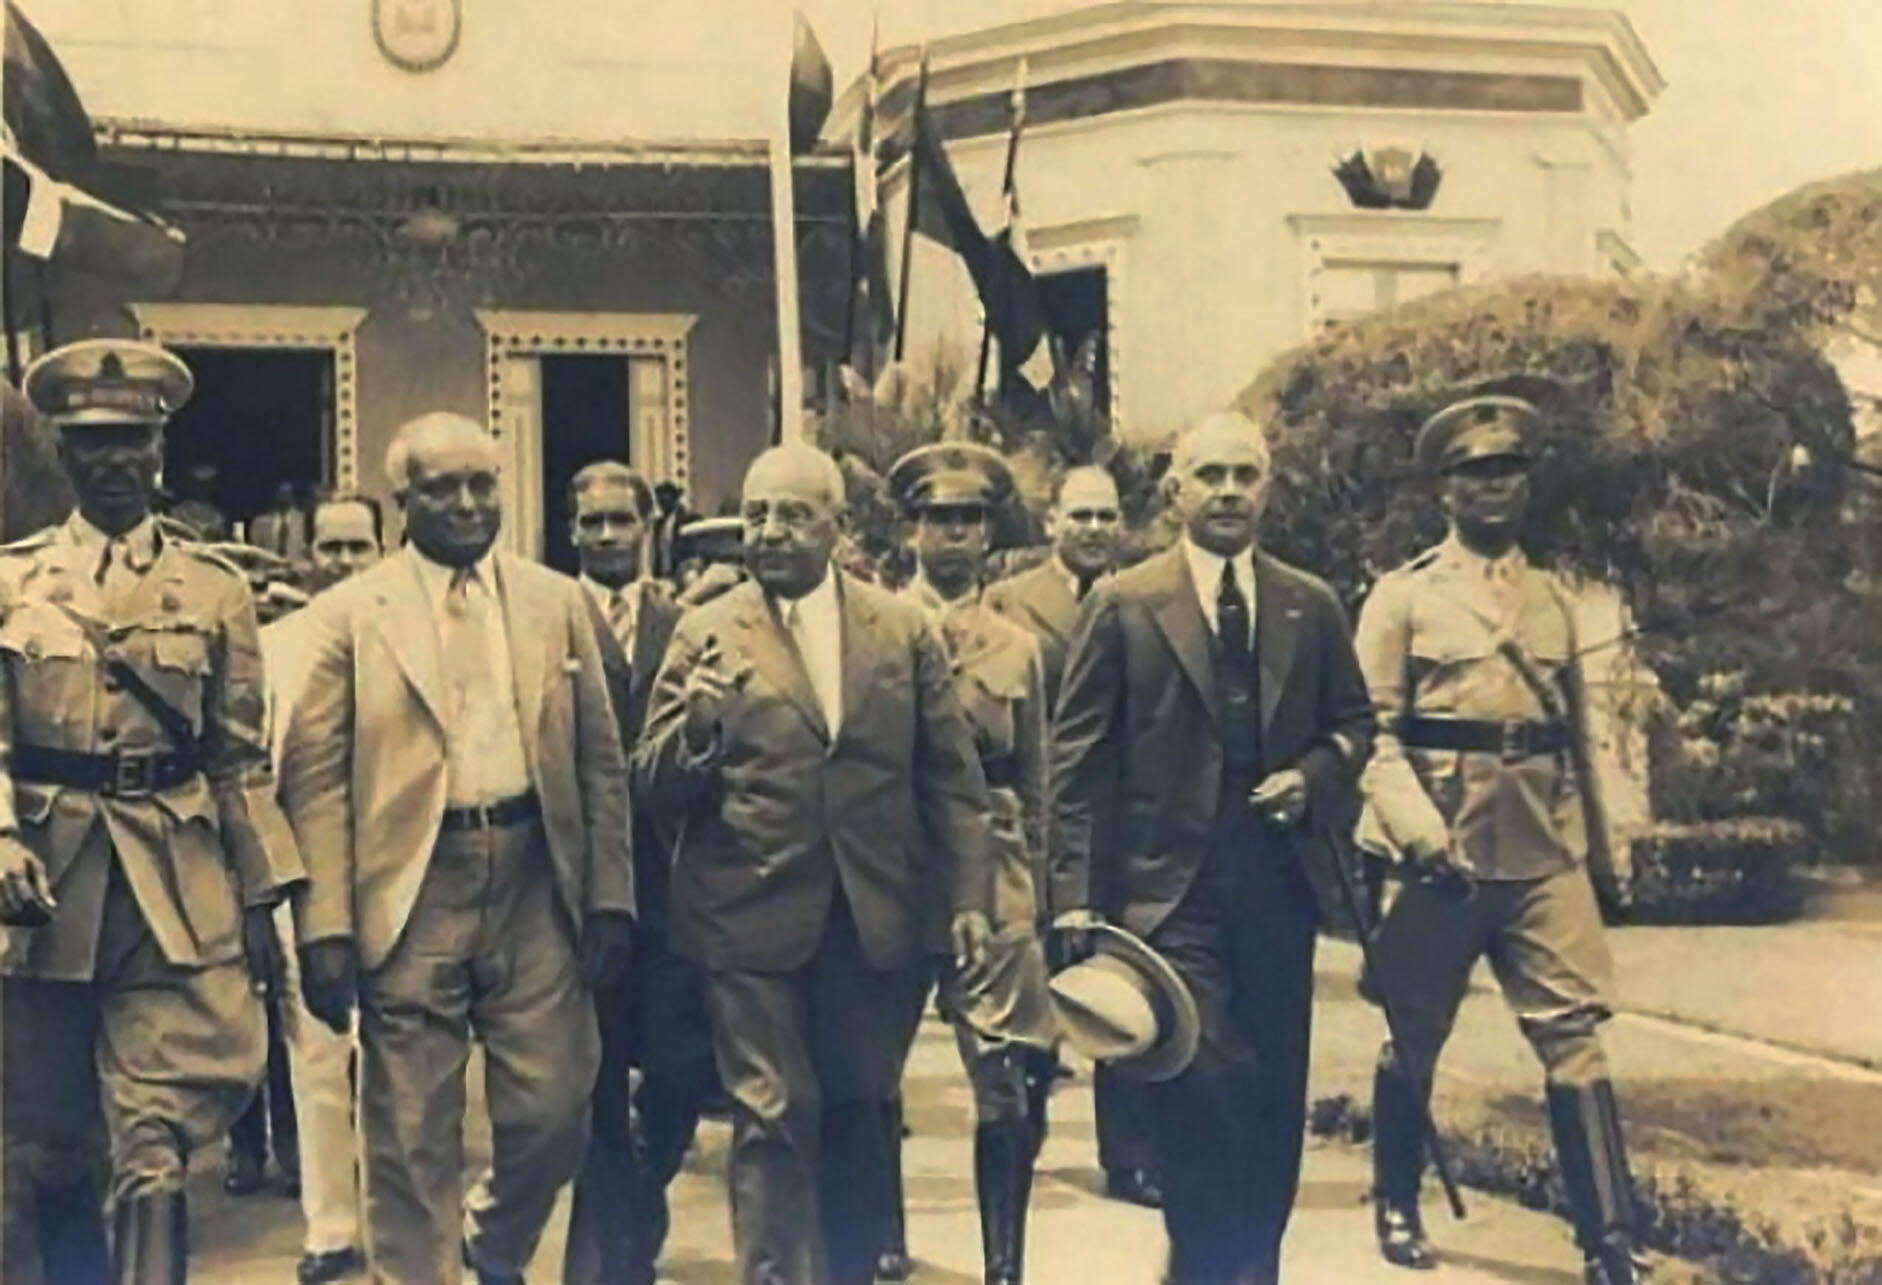 Black and white photo of the meeting between Haitian president Sténio Vincent and Rafael Trujillo on the border between Haiti and the Dominican Republic, 1933. (Photo from Wikimedia.)